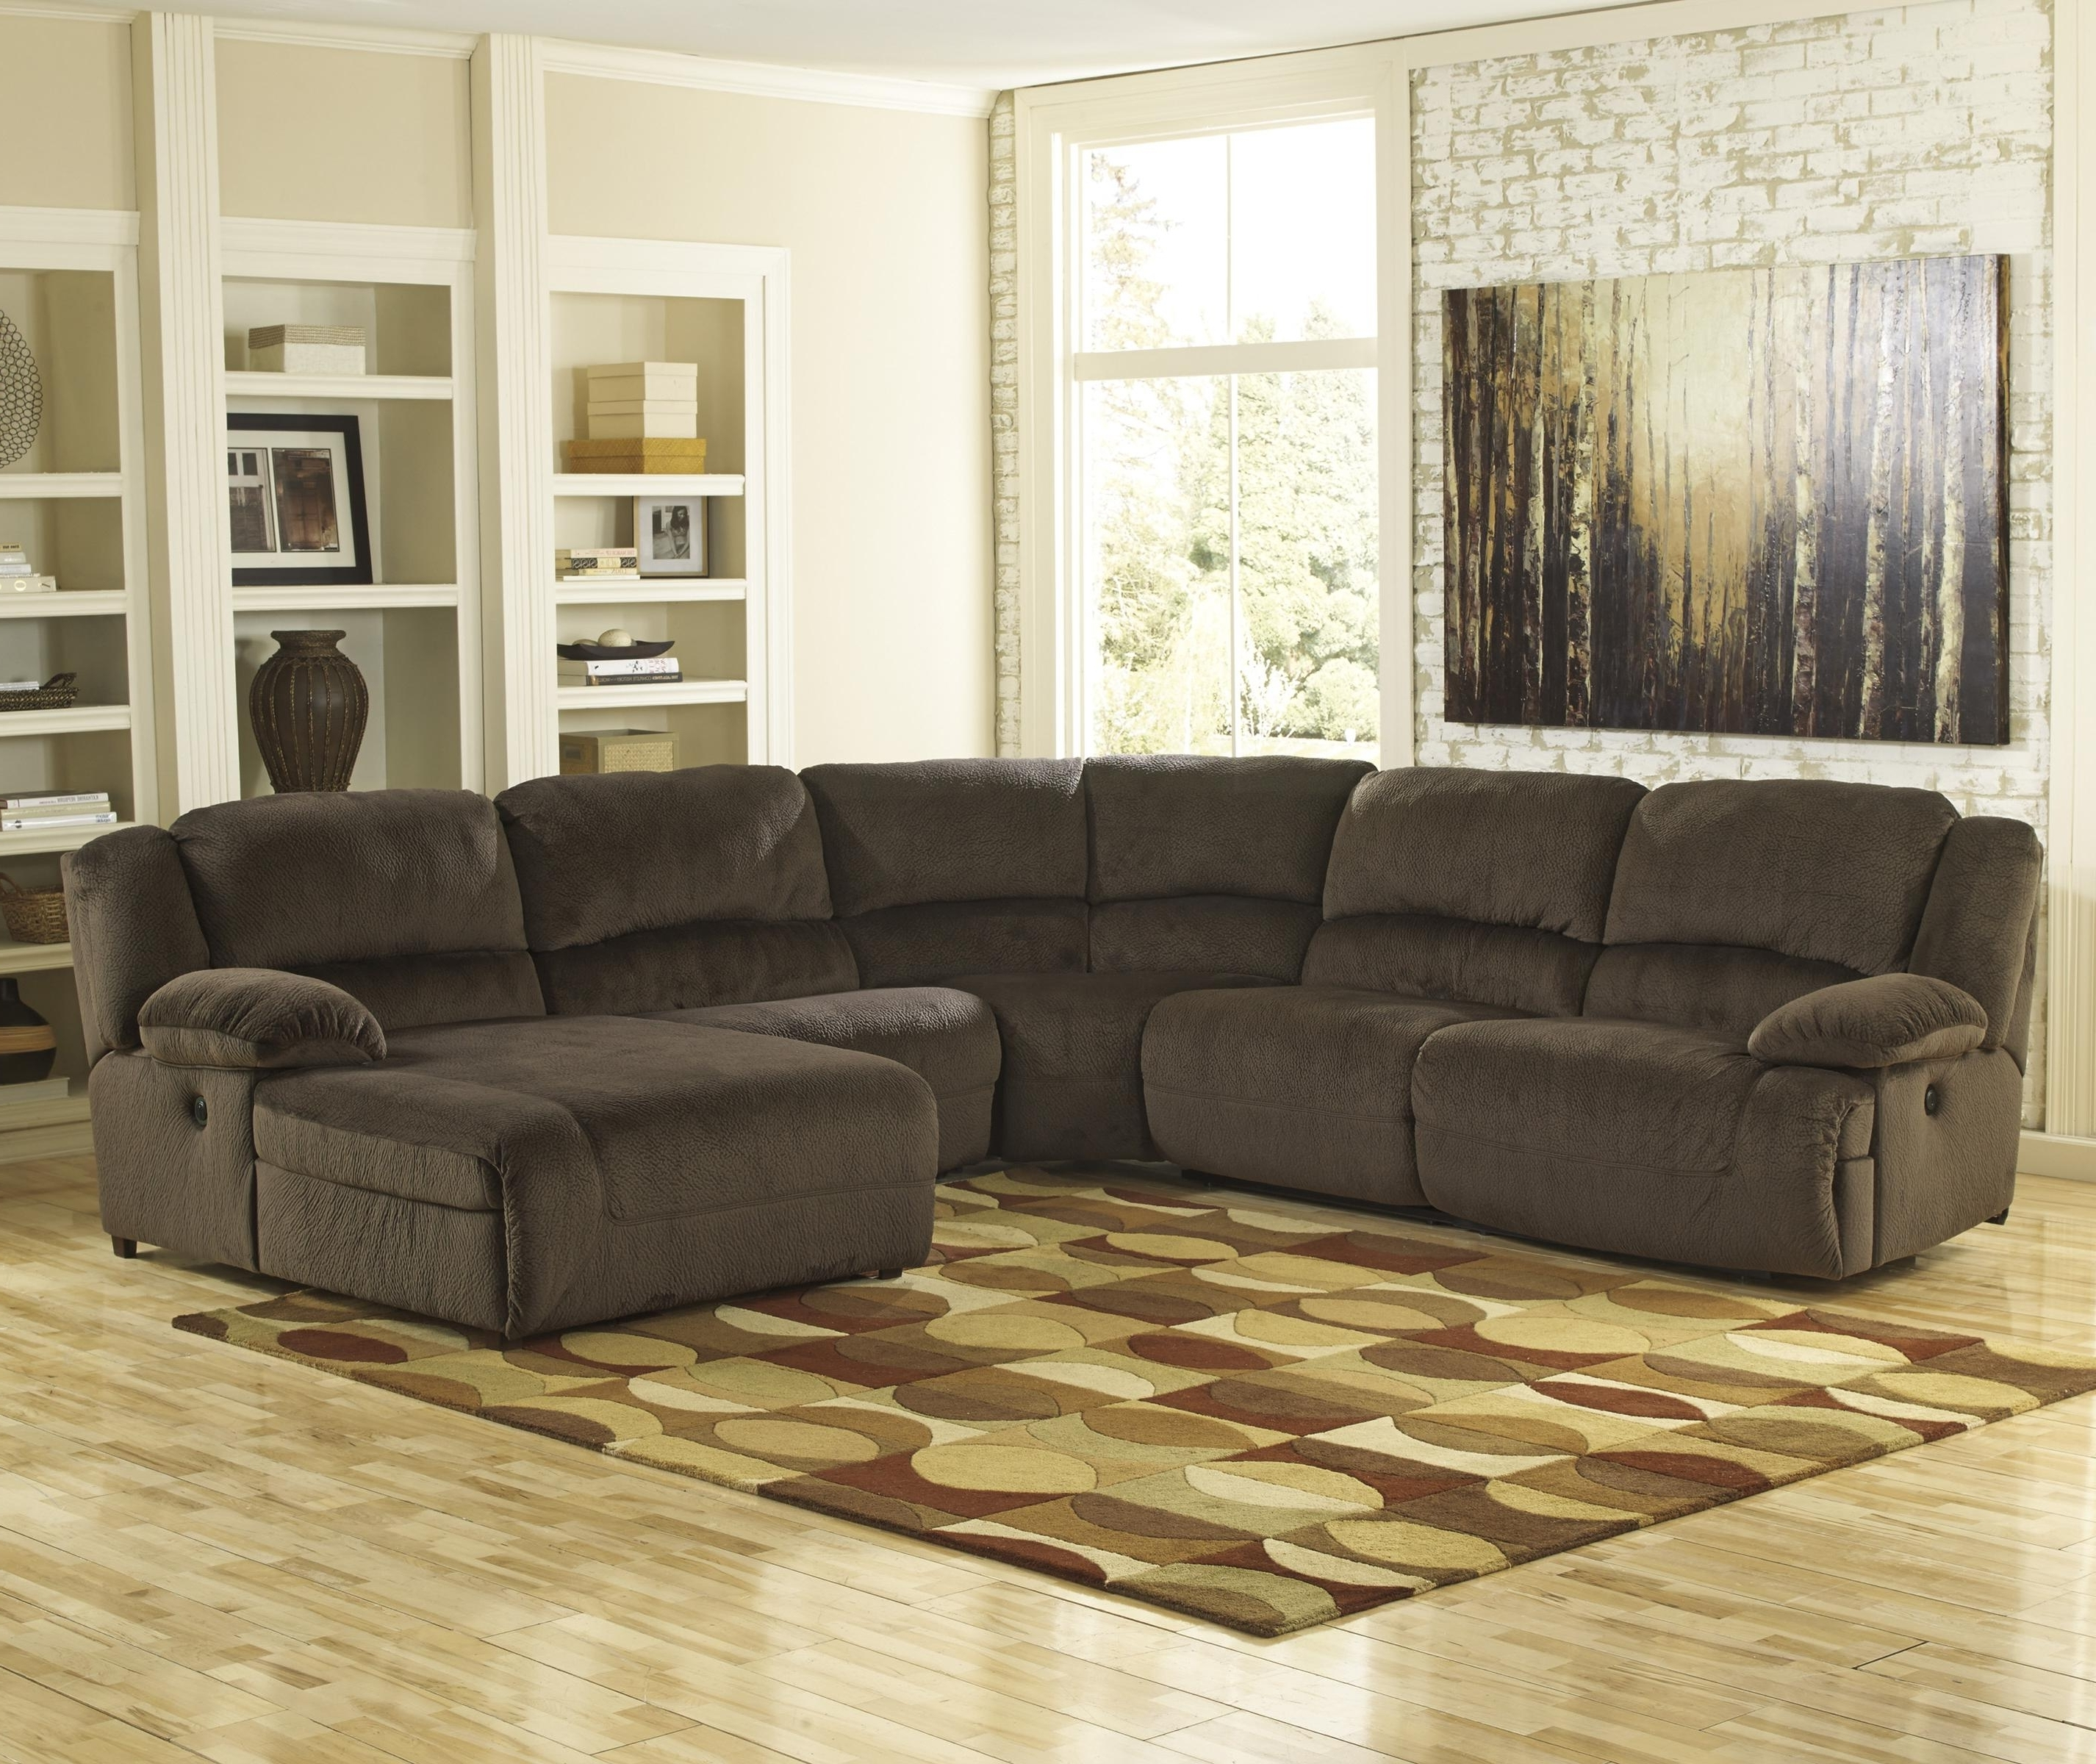 Sectional Sofas At Craigslist With Regard To Famous Stylish Sectional Sofas On Craigslist – Mediasupload (View 18 of 20)